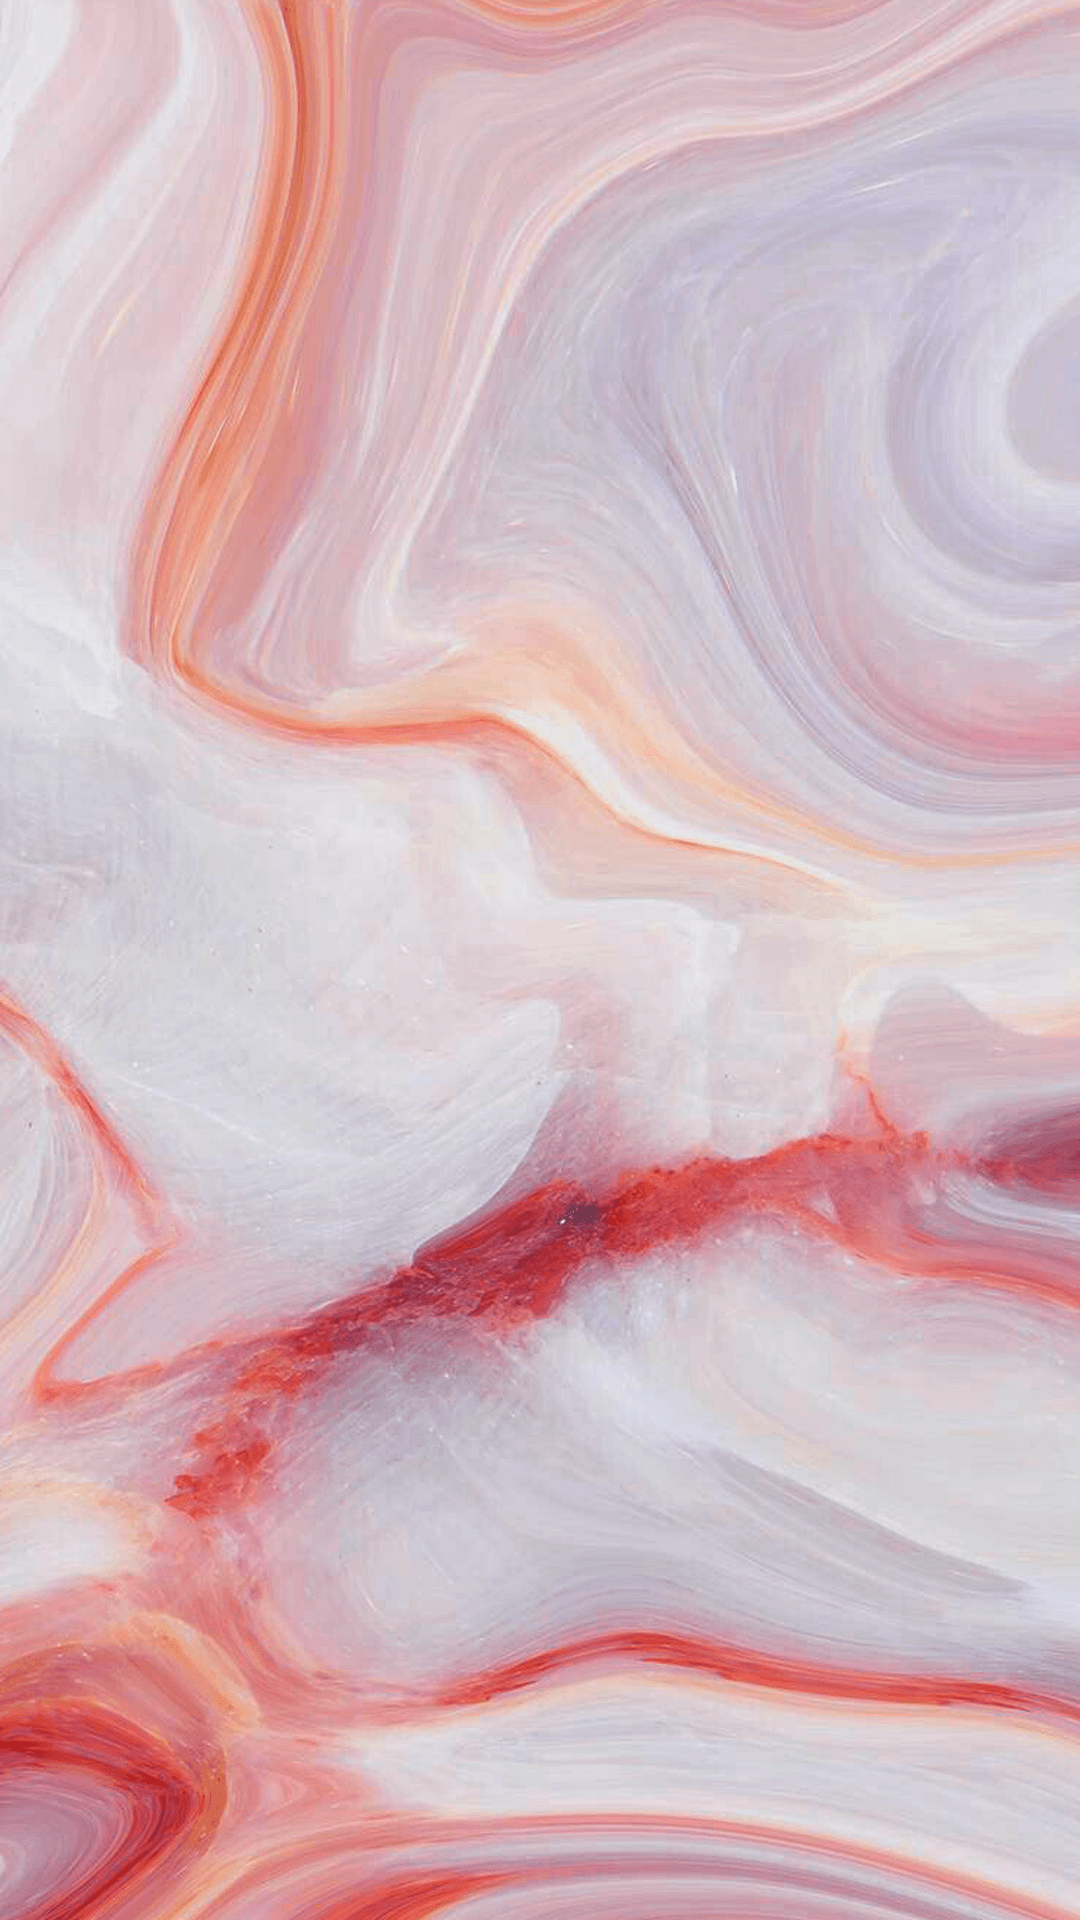 1080x1920 My Lockscreens - Marble | B Wallpaper | Wallpaper, Iphone wallpaper ...